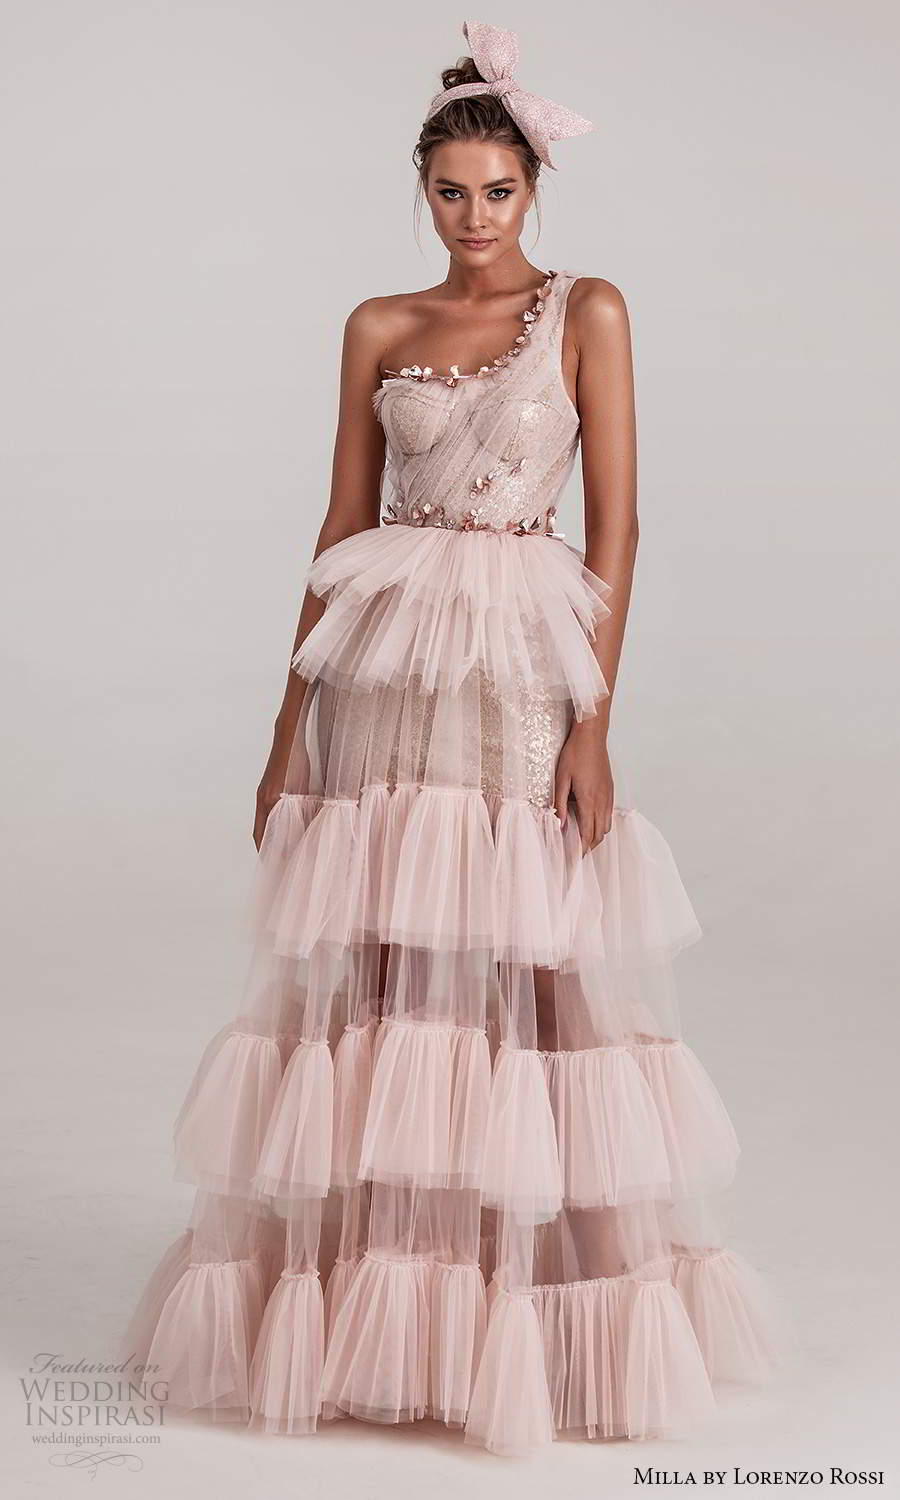 milla by lorenzo rossi 2020 rtw one shoulder straps sweetheart neckline ruched bodice embellished a line dress ruffle tier skirt pink blush (21) mv